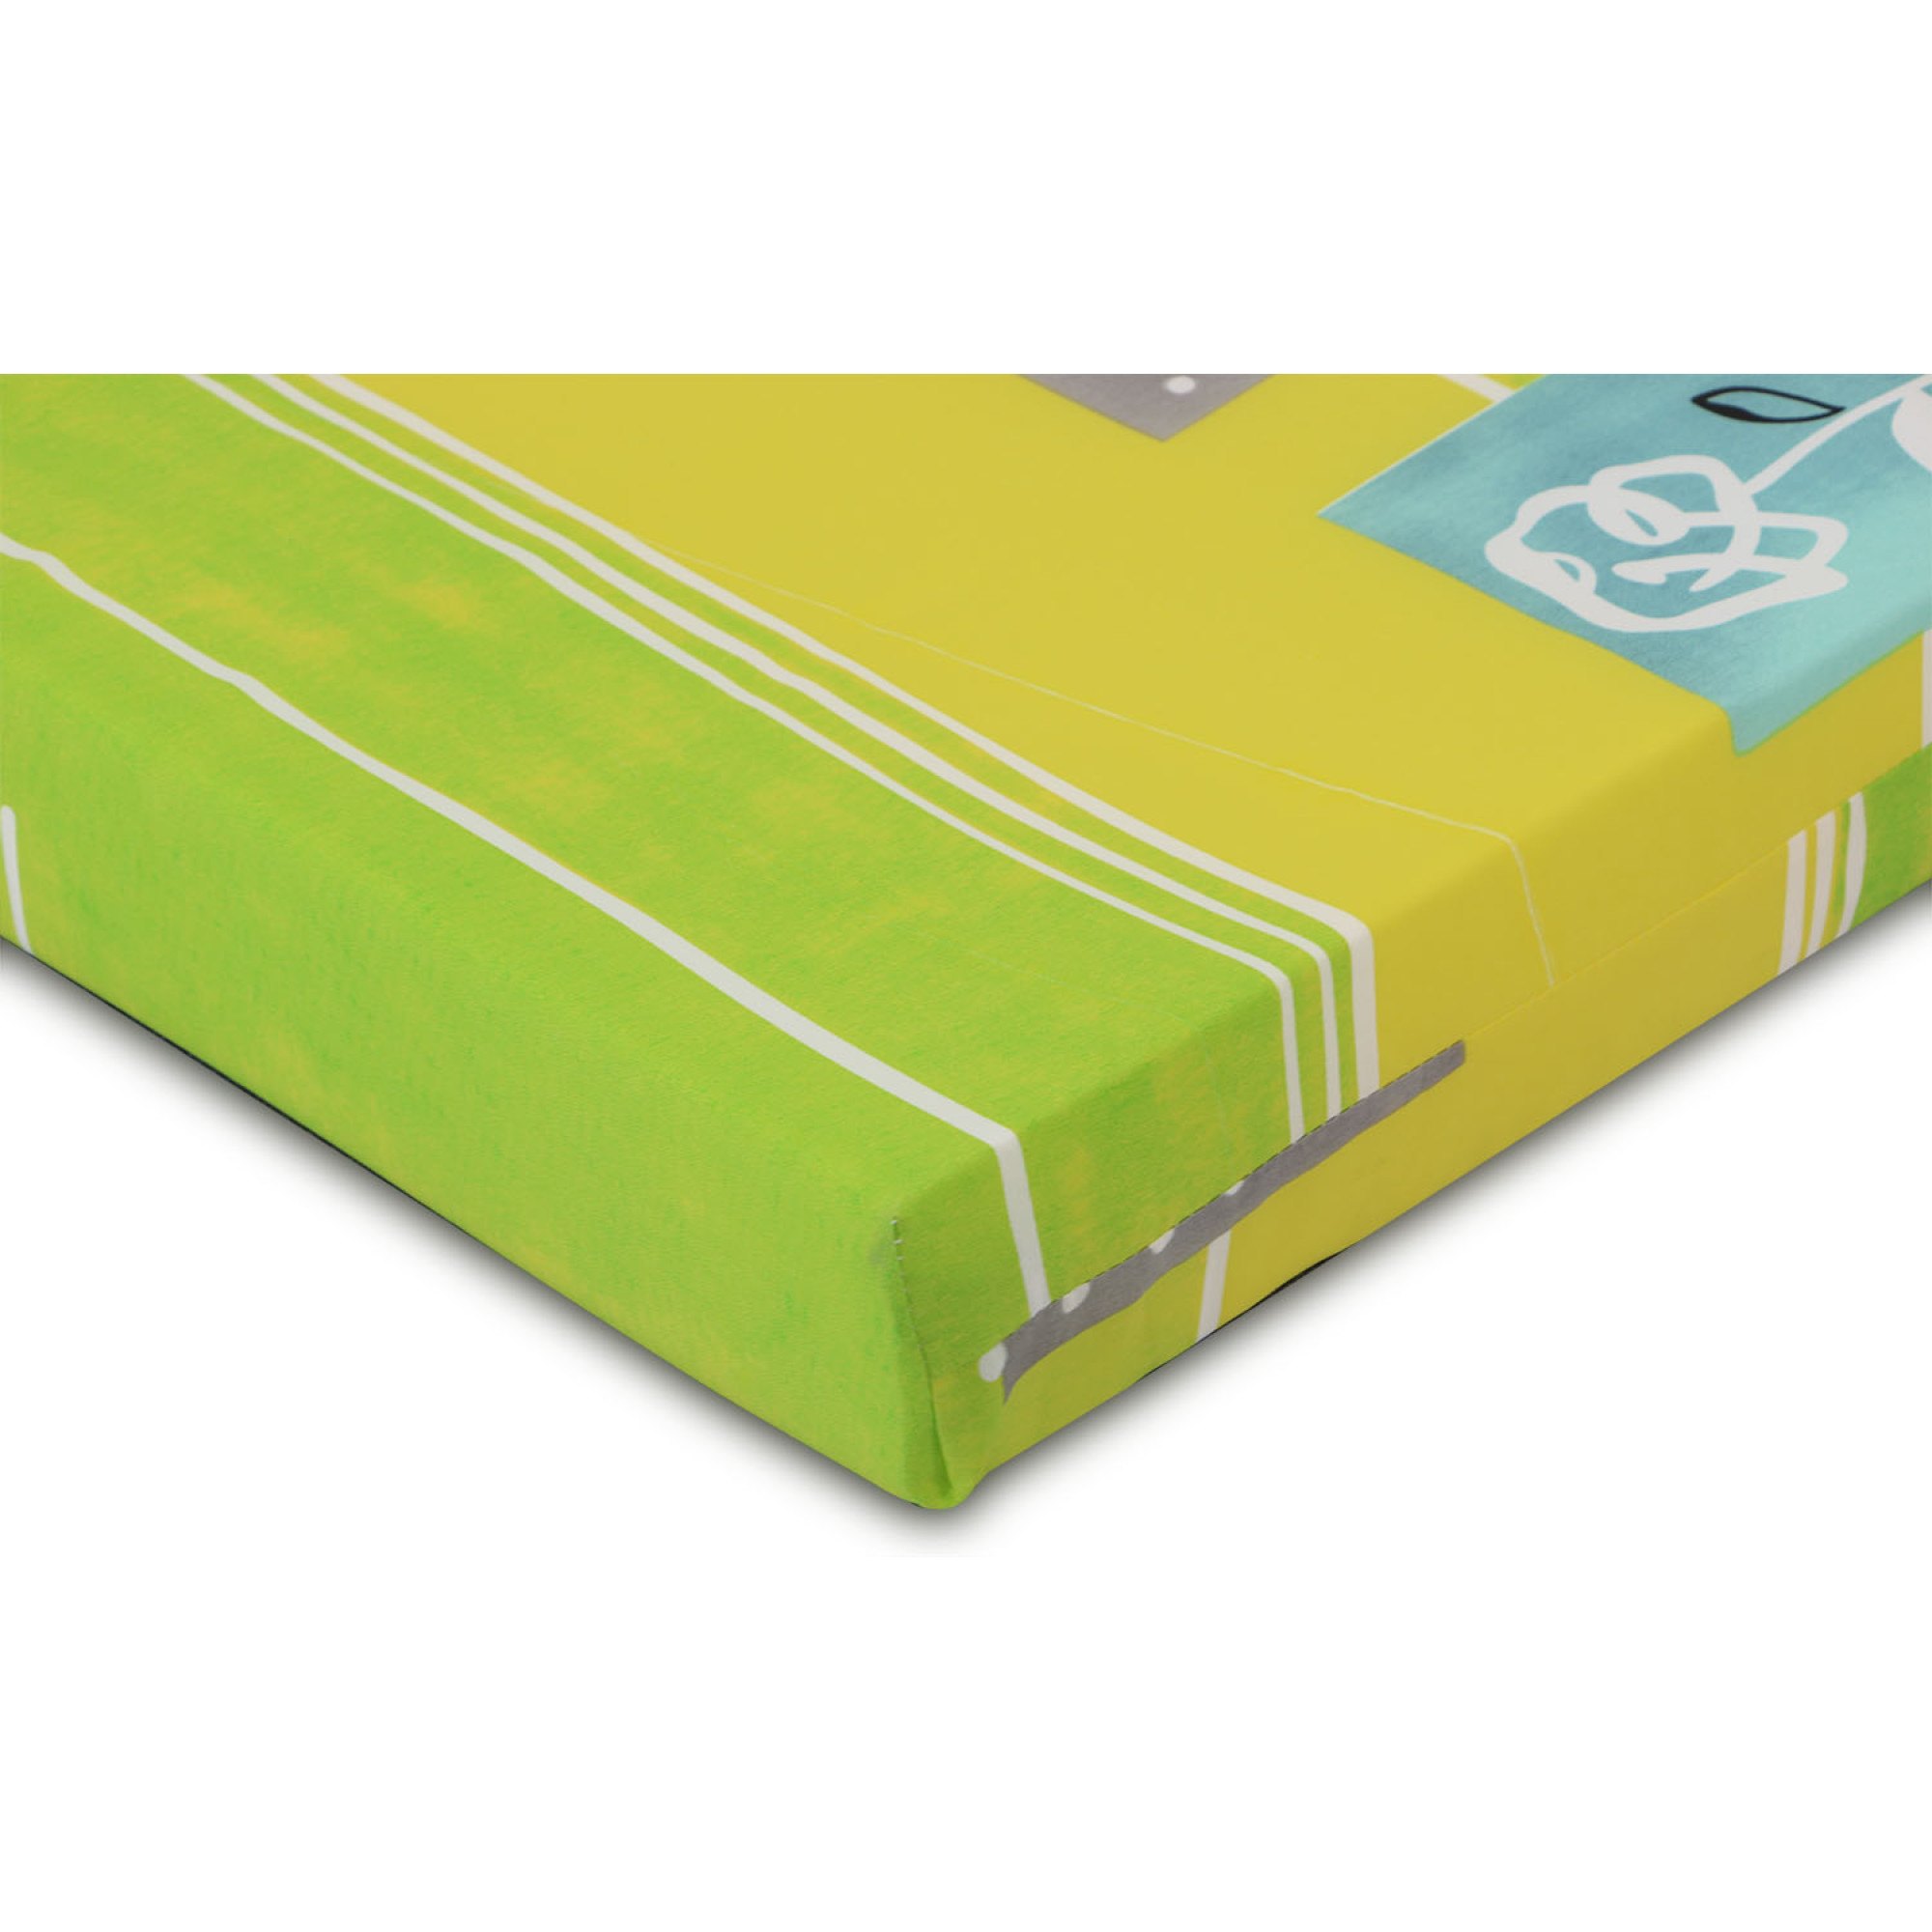 Mattresses Mattress Warehouse Clearance Outlet Garden Breeze Foam Mattress - Super Single Sized ...